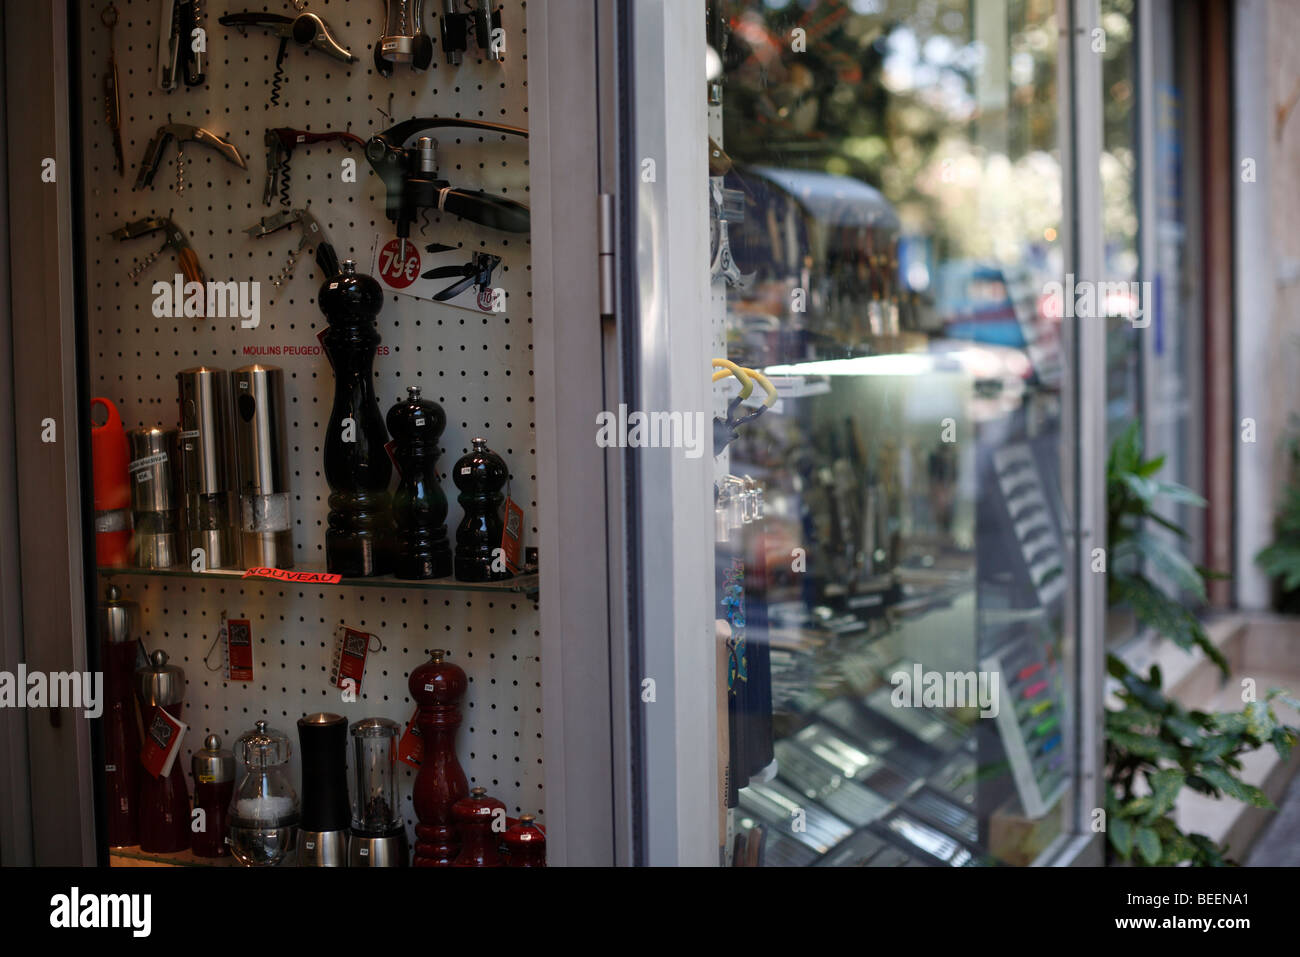 Pepper grinders and corkscrews for sale in a shop in Antibes on the Cote D'Azur in southern France - Stock Image